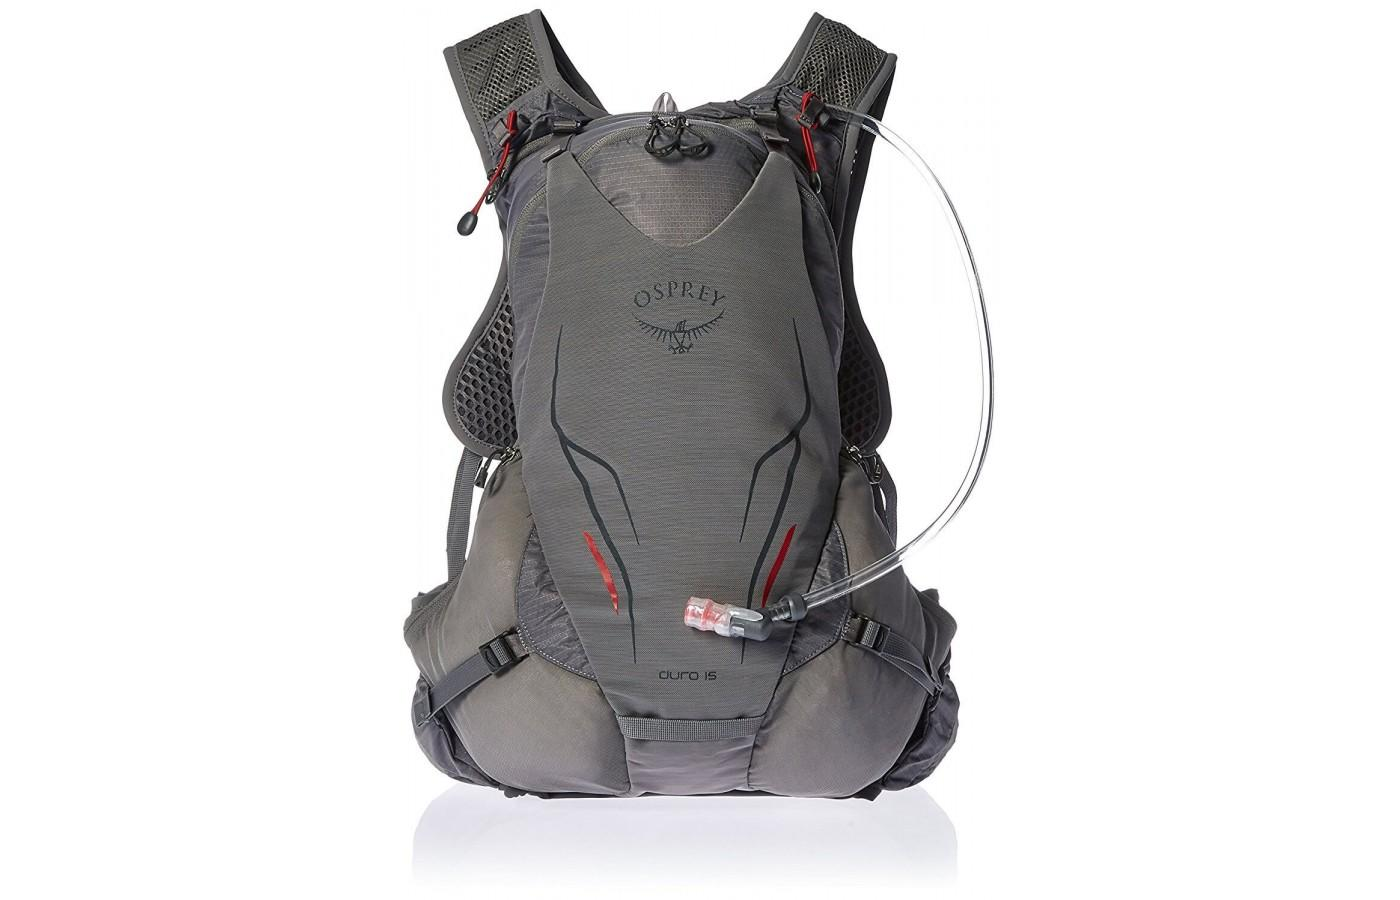 The Osprey Duro 15 features a separate hydration sleeve that fits a 2.5L reservoir (included)